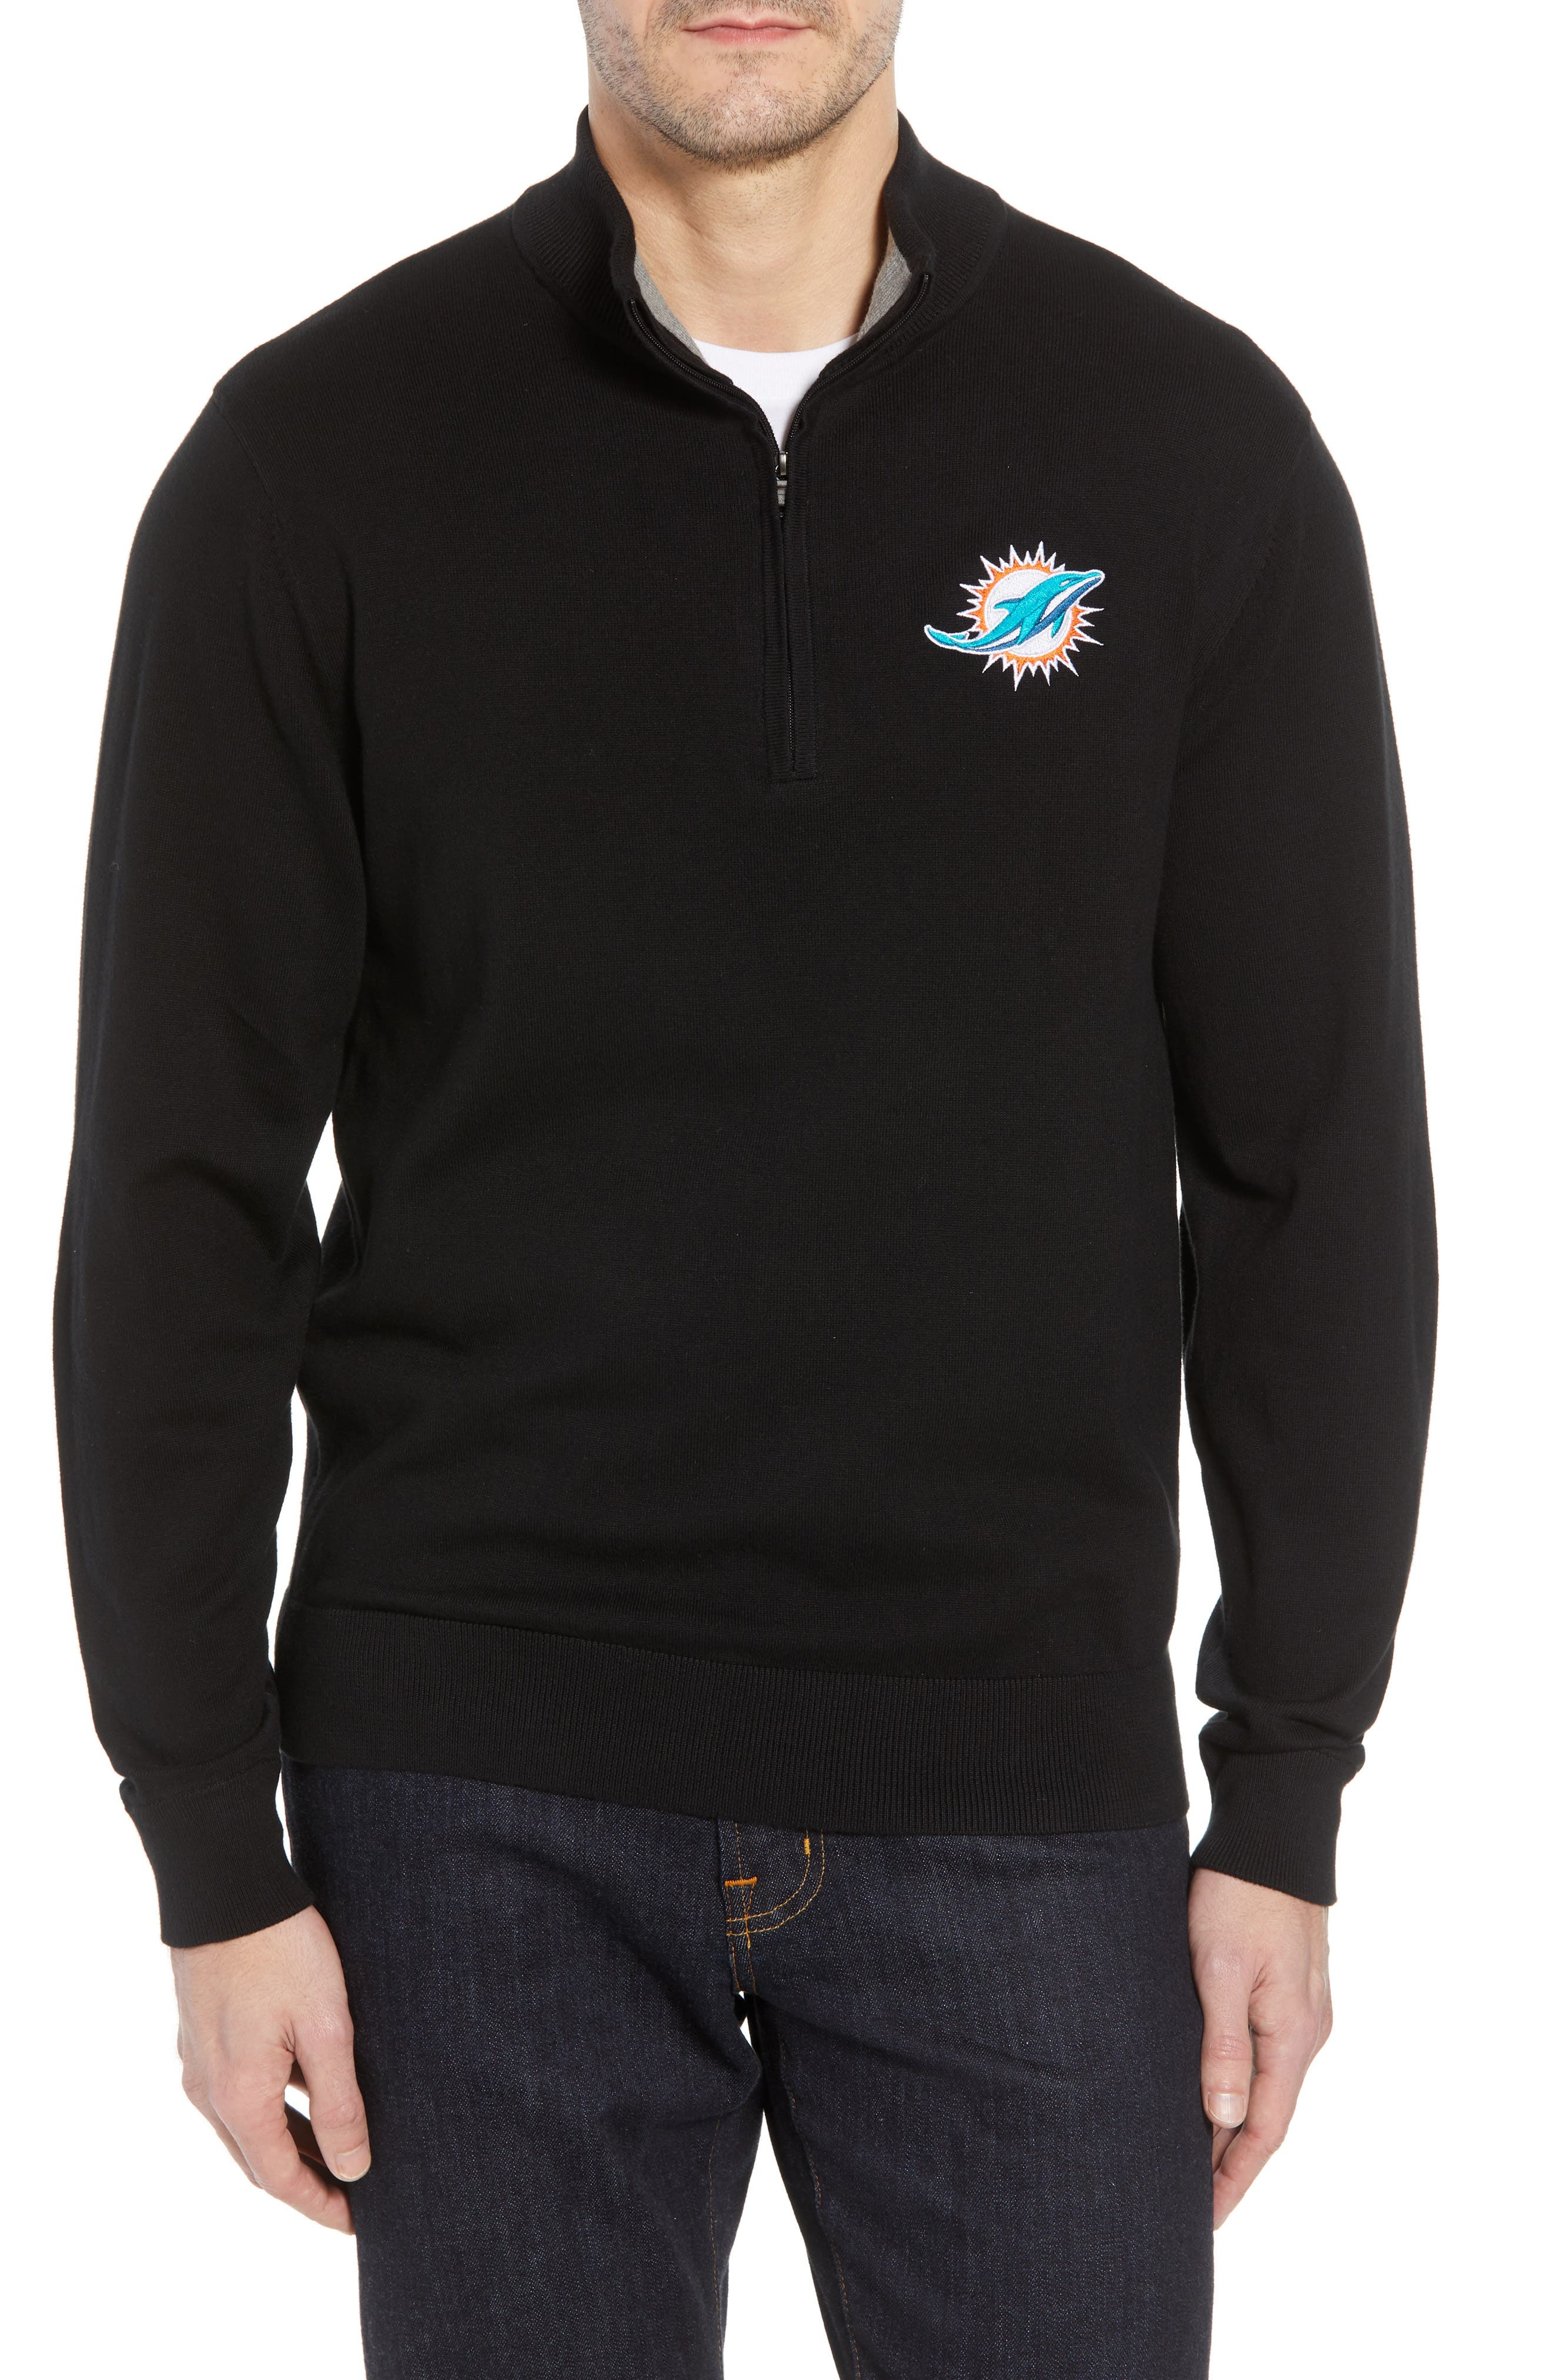 Miami Dolphins - Lakemont Regular Fit Quarter Zip Sweater,                         Main,                         color, BLACK